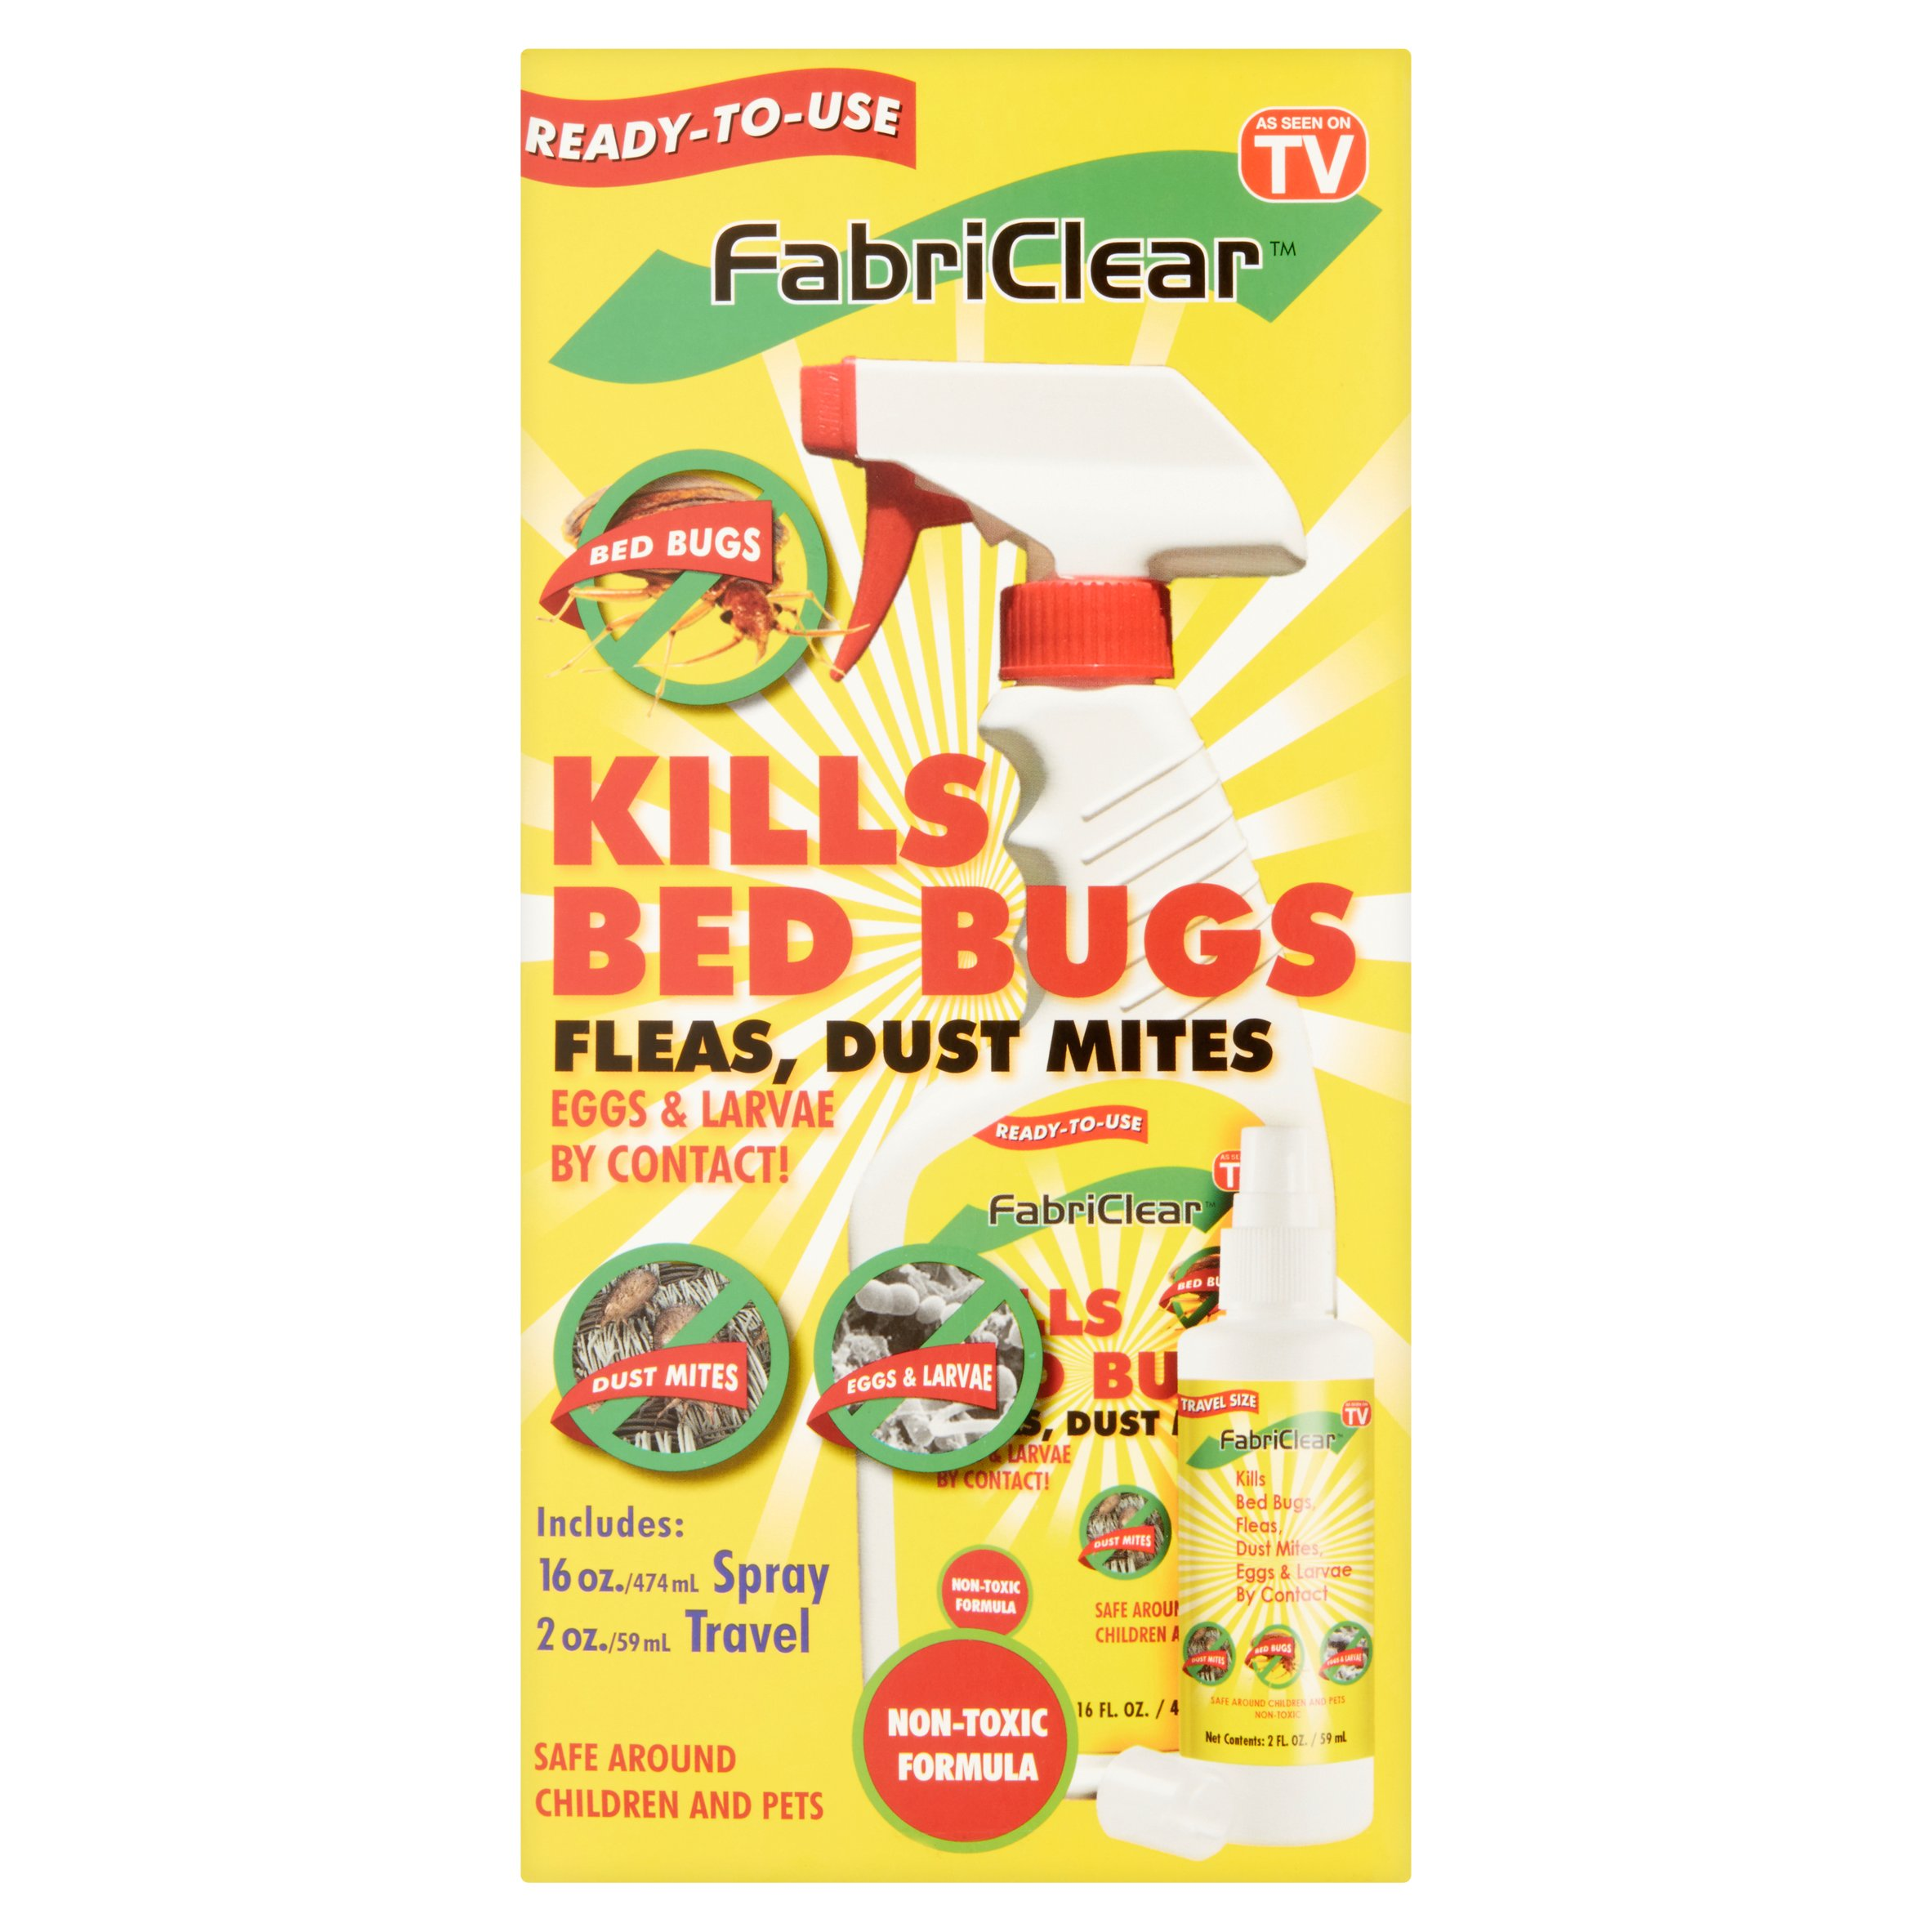 As Seen on TV FabriClear for Bed Bugs